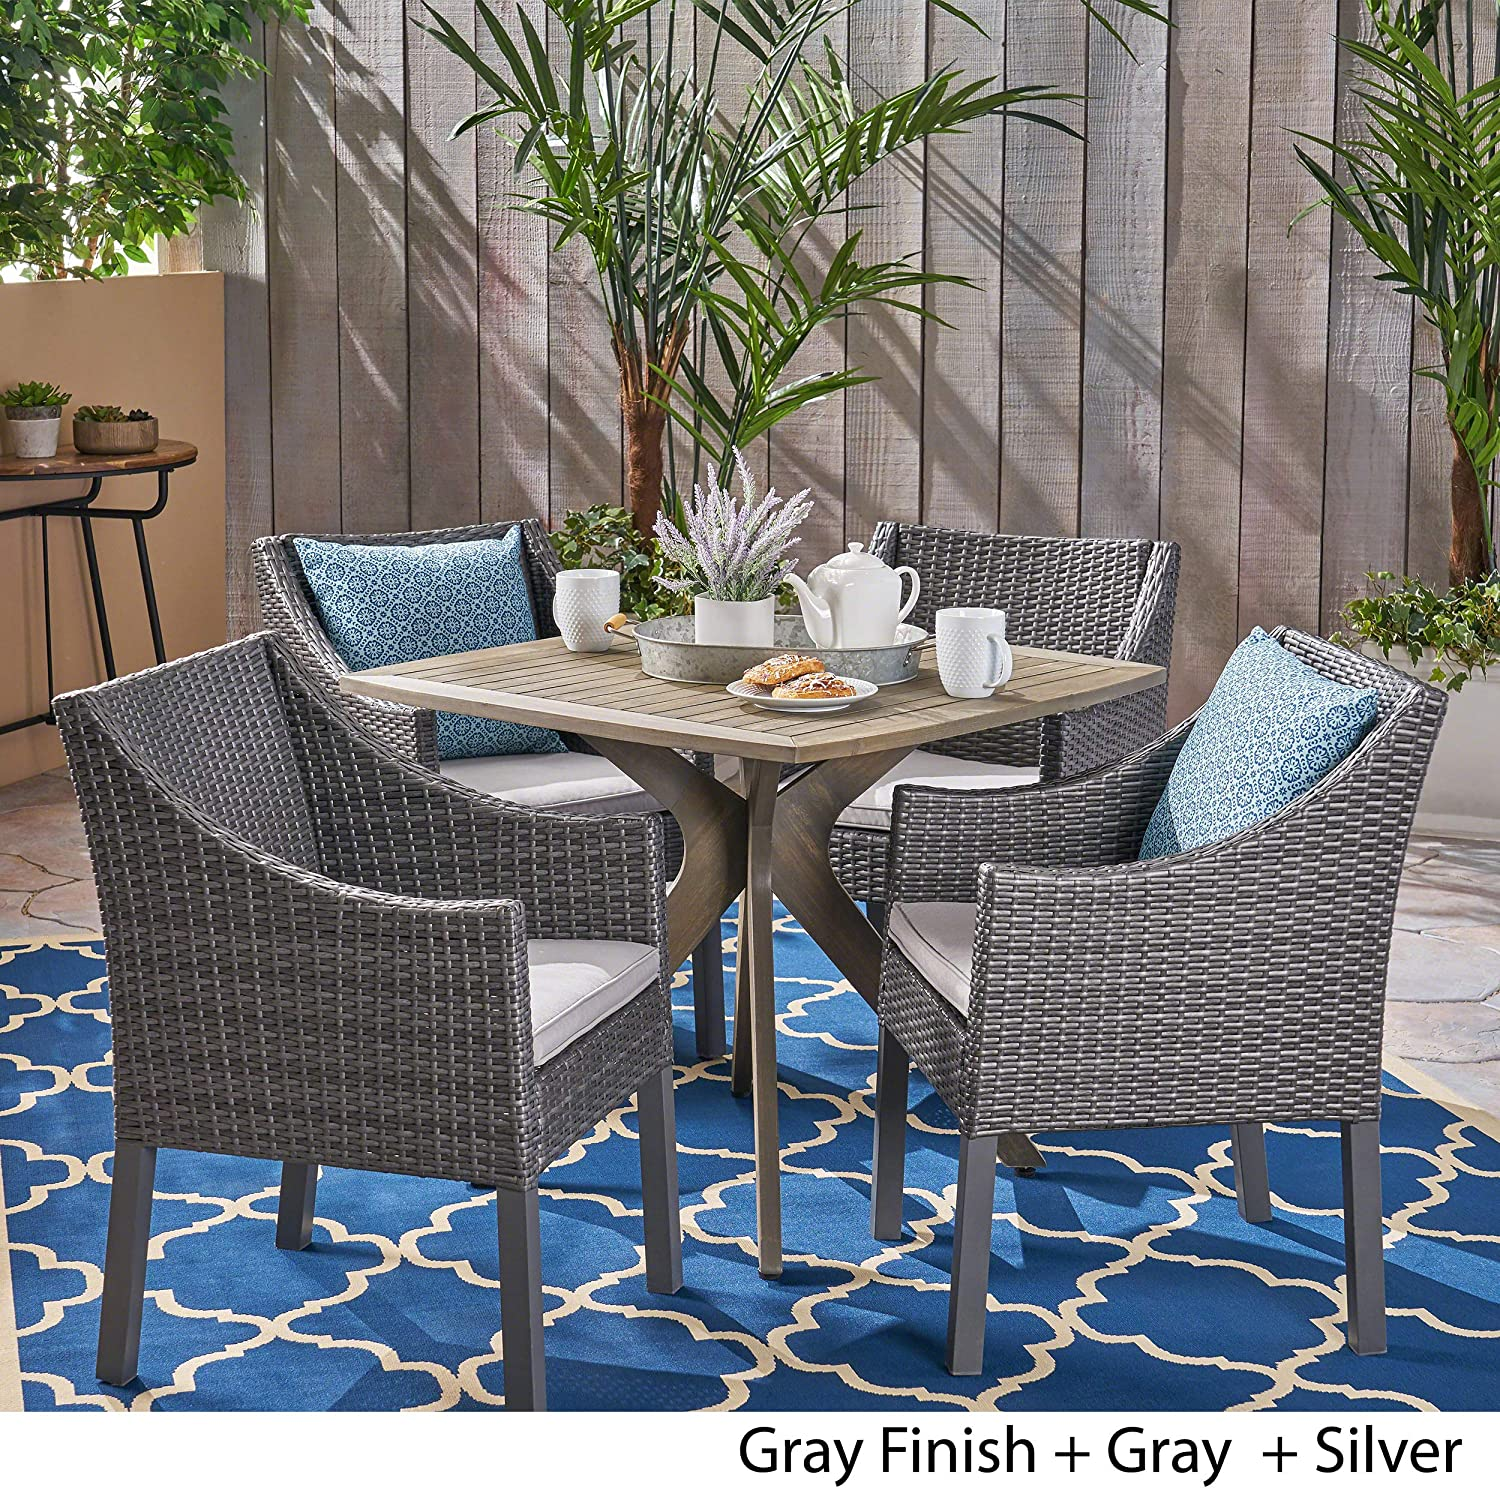 Amazon com great deal furniture tarry outdoor 5 piece wood and wicker dining set gray finish and gray and silver garden outdoor